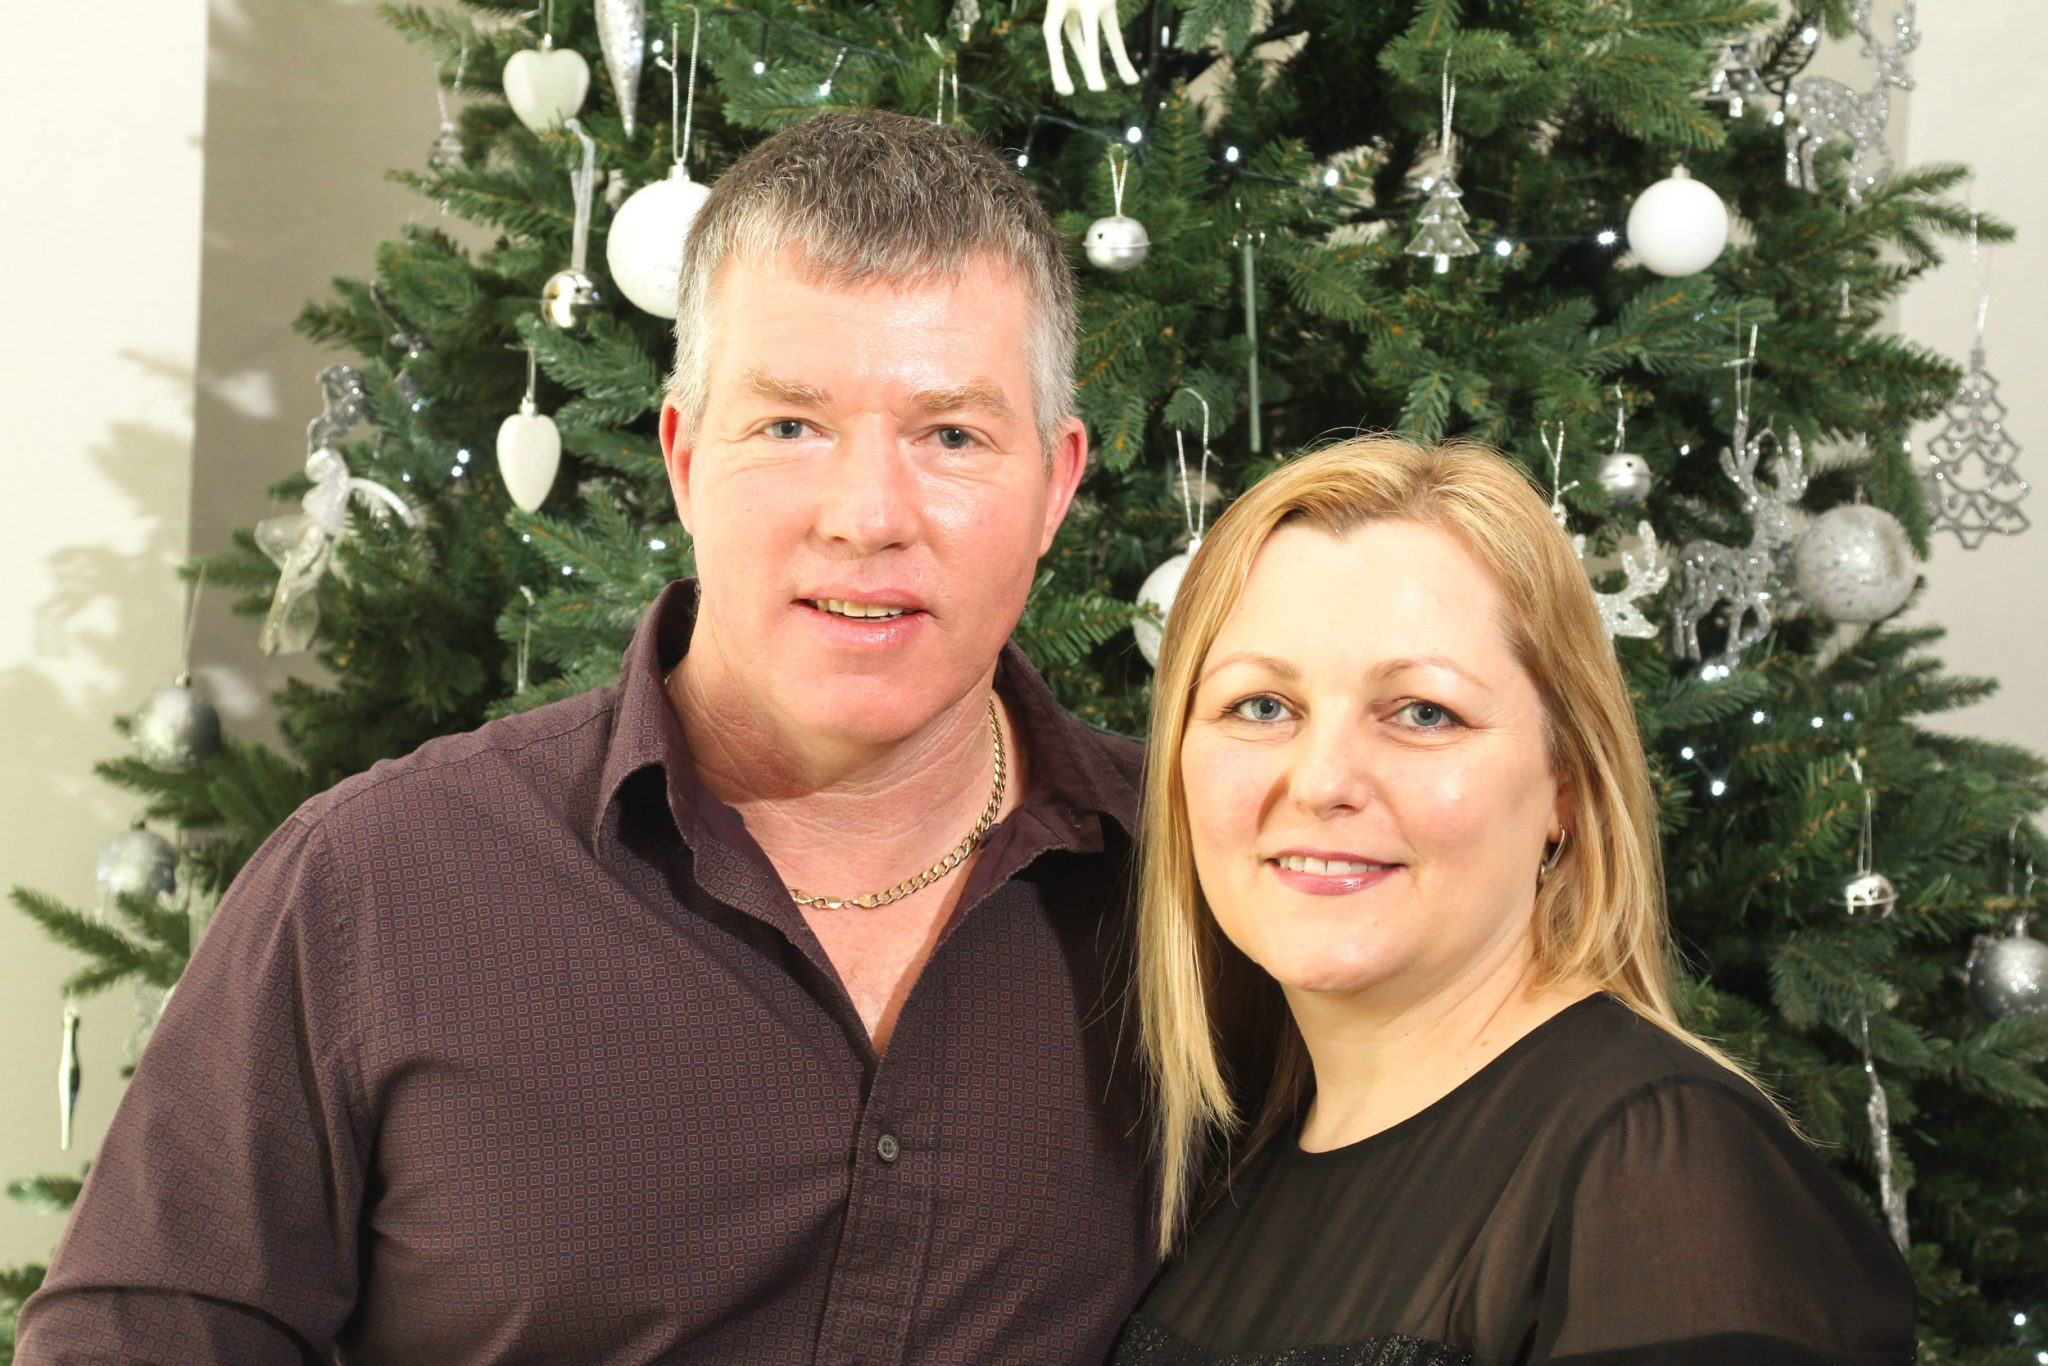 Friendly couple in front of Christmas tree at a Christmas party event